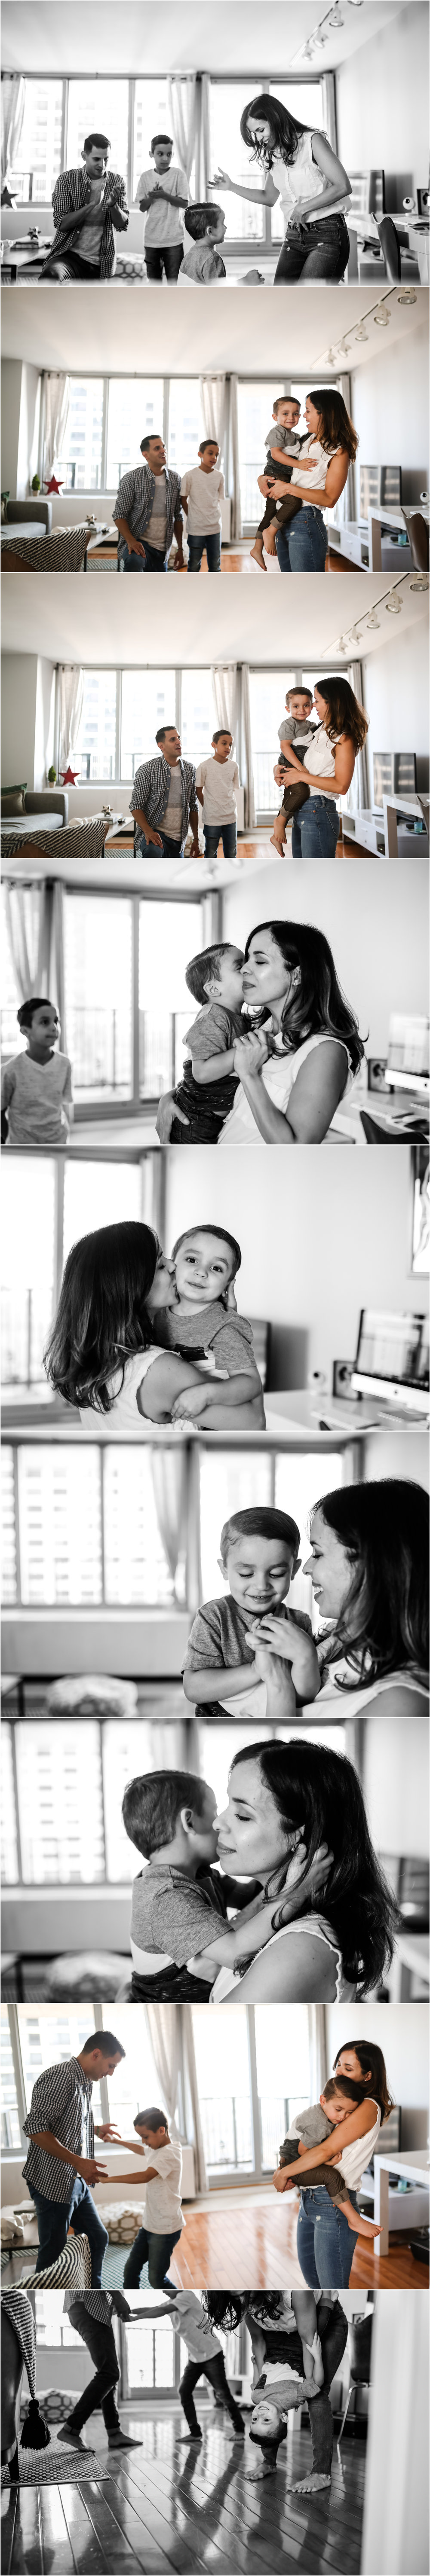 jenny grimm photography chicago lifestyle family organic modern portrait photographer